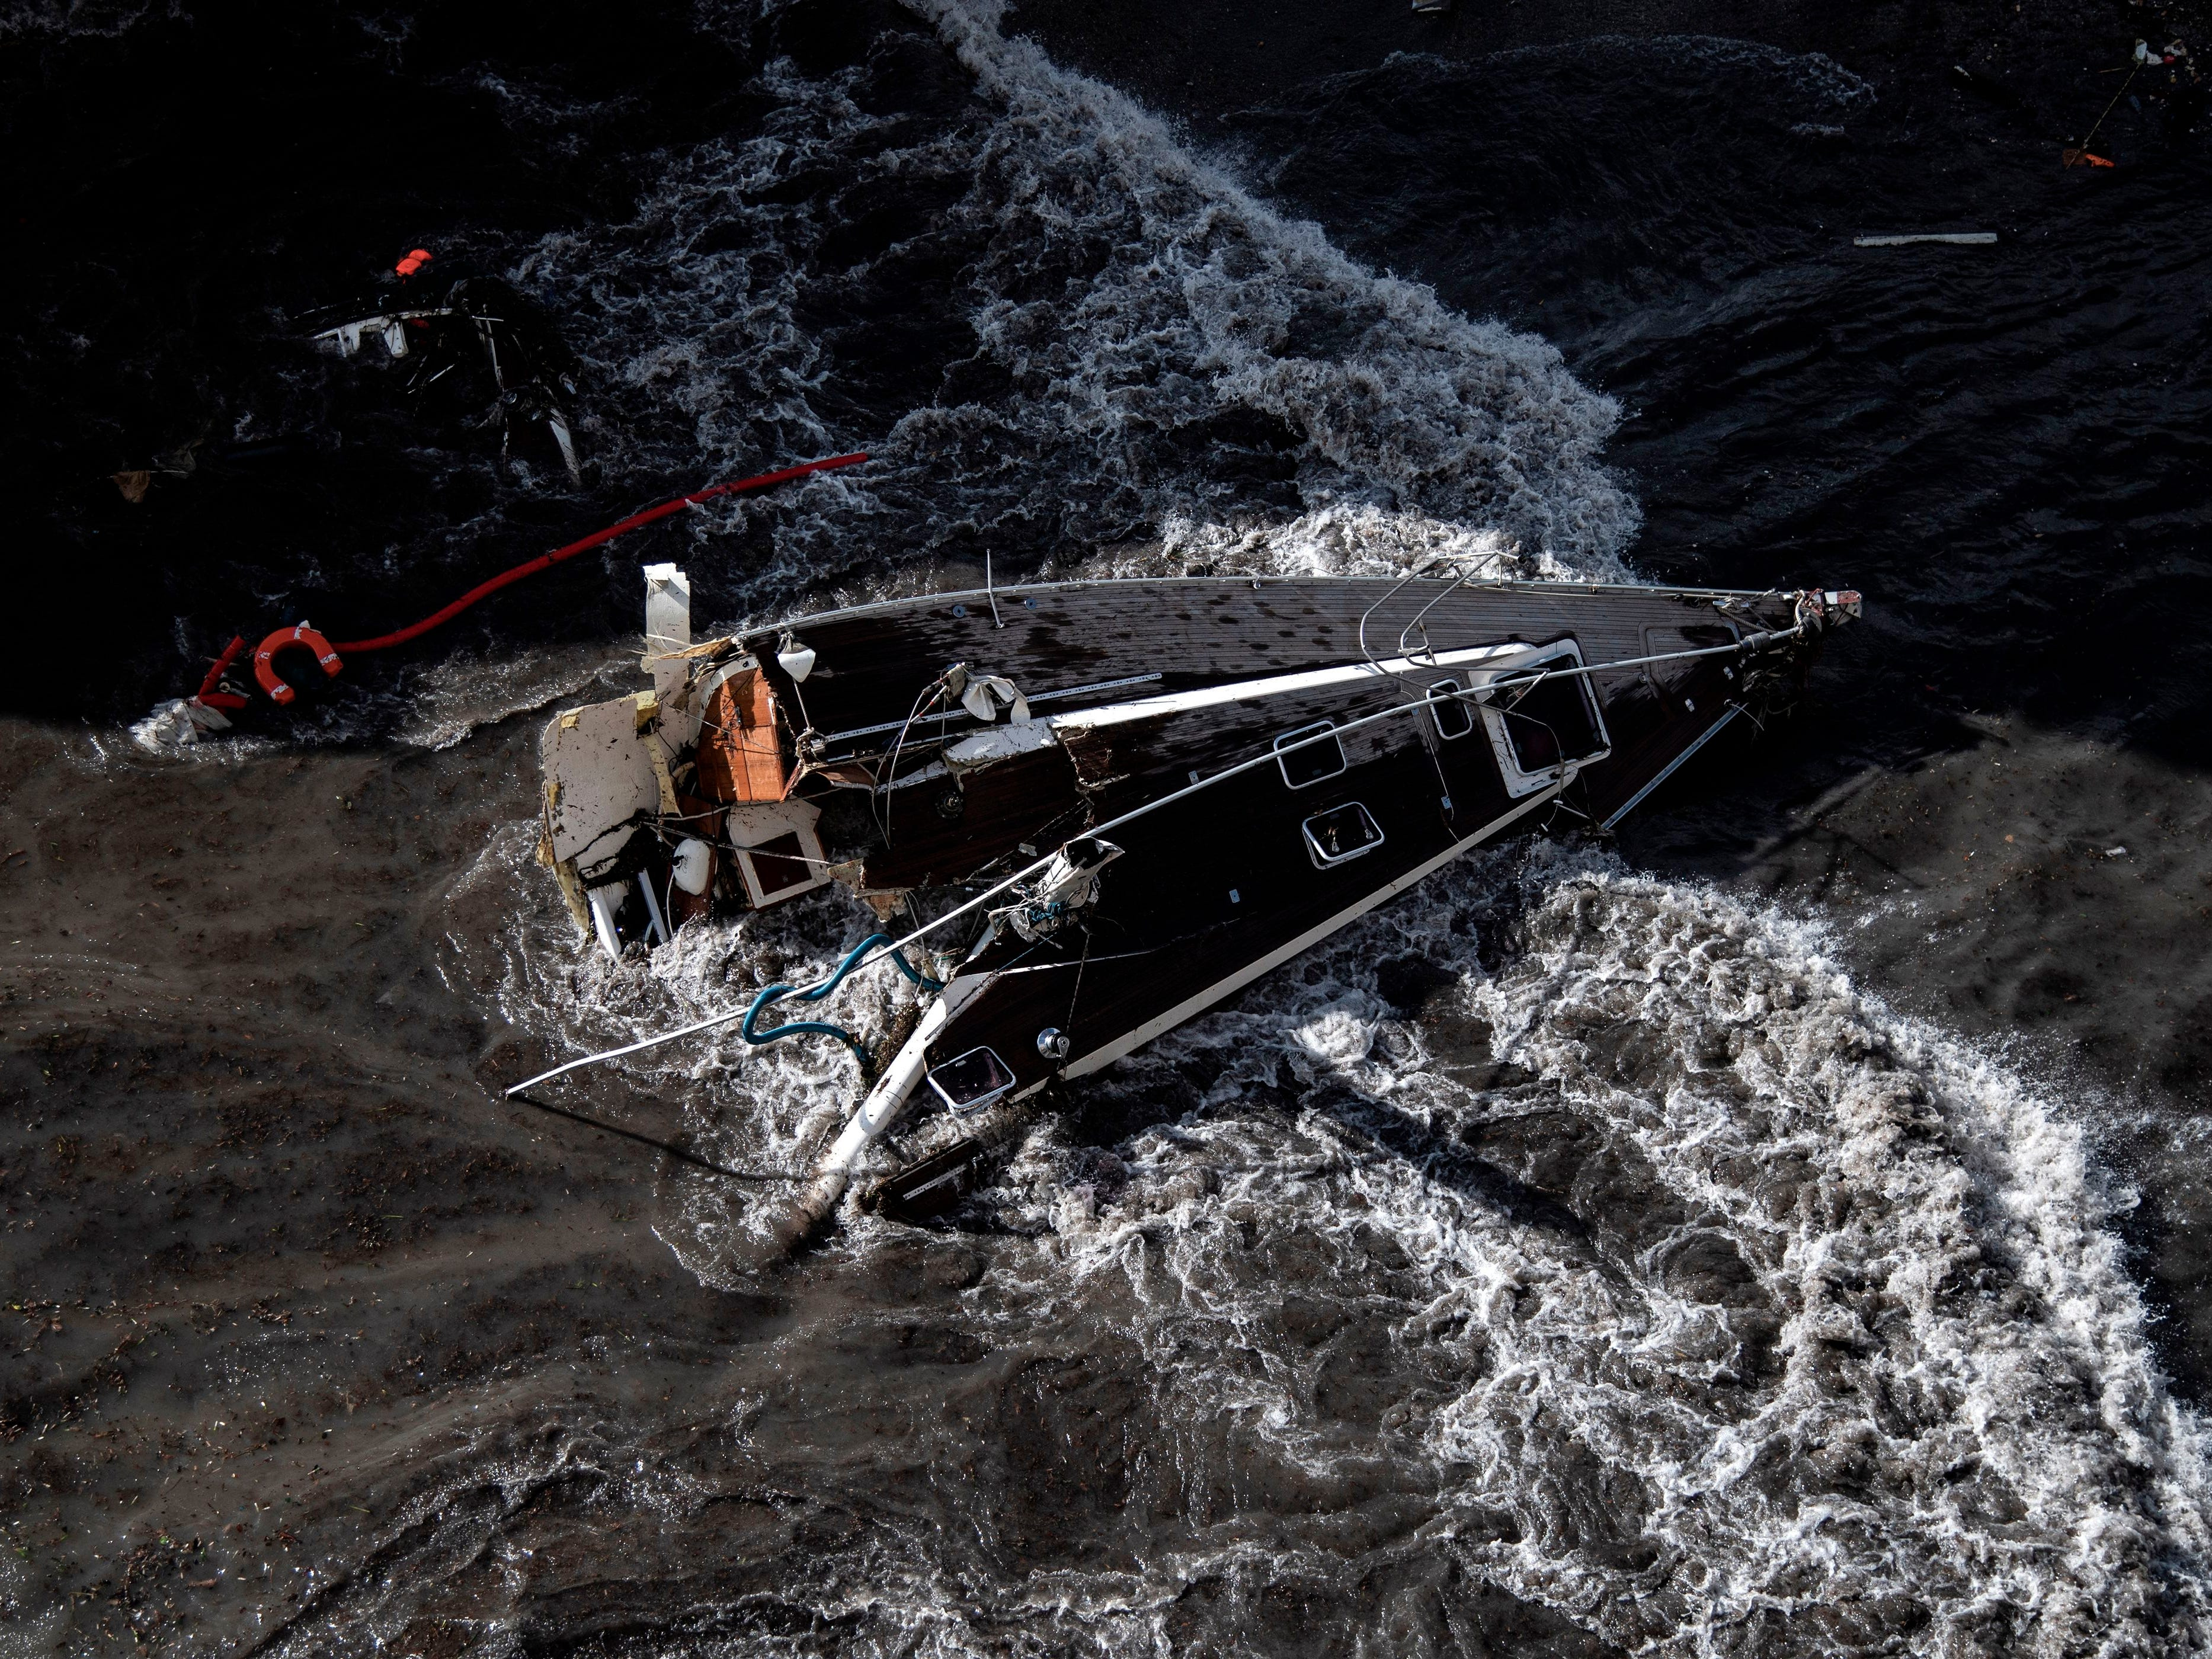 A broken yacht lies near the harbour of Rapallo, near Genoa, on Oct. 30, 2018 after a storm hit the region and destroyed a part of the dam the night before. The fierce storms battering Italy left nine dead in the night from Oct. 29-30.